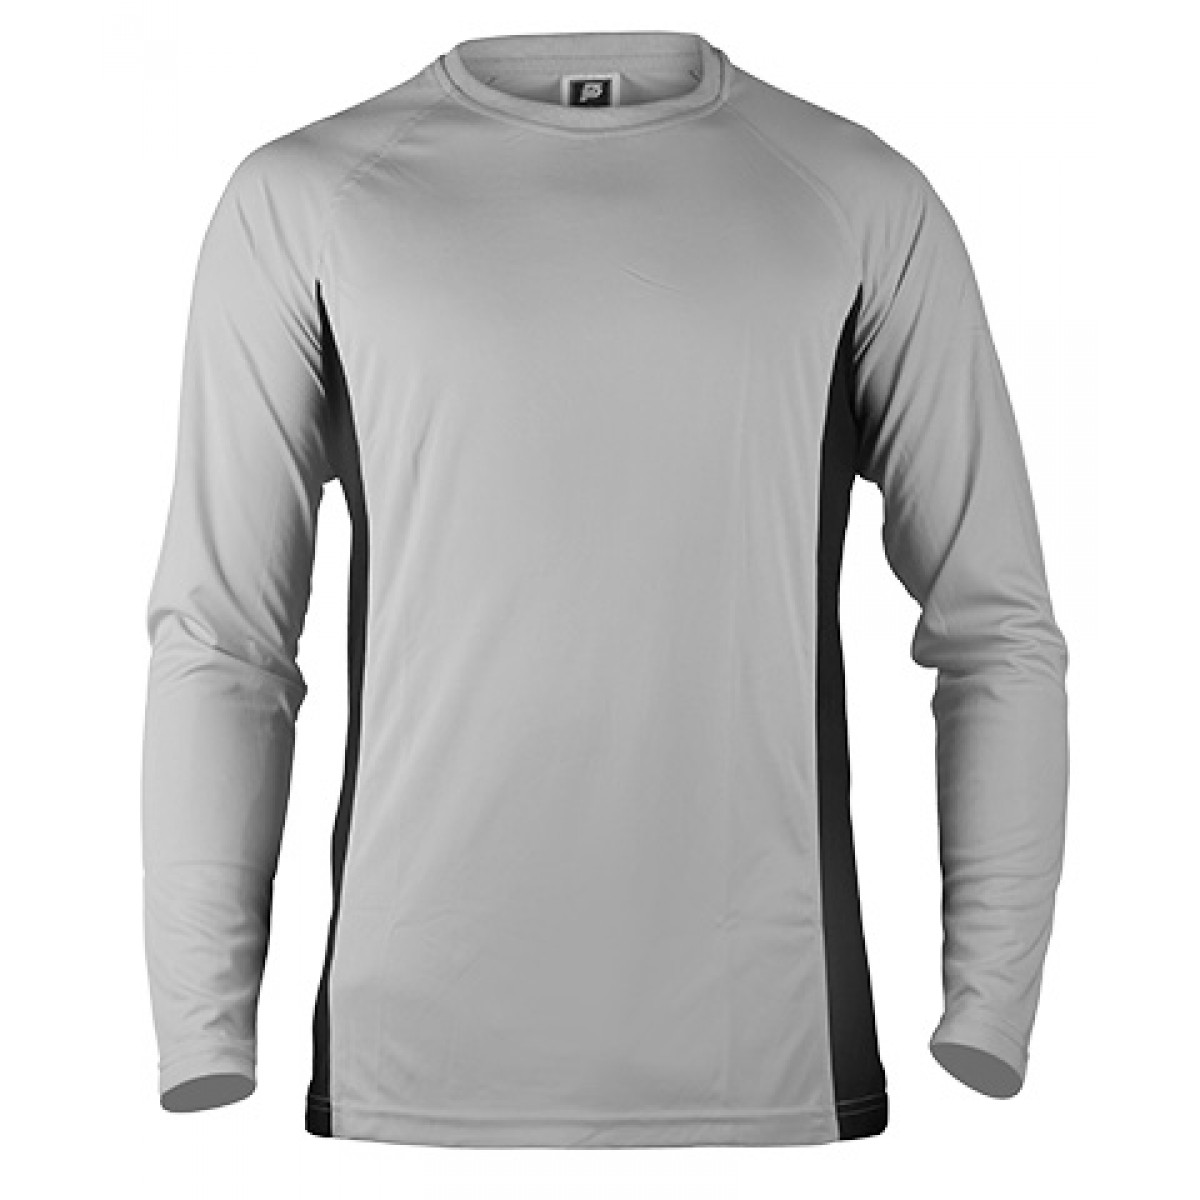 Long Sleeves Performance With Side Insert-Gray/Black-M